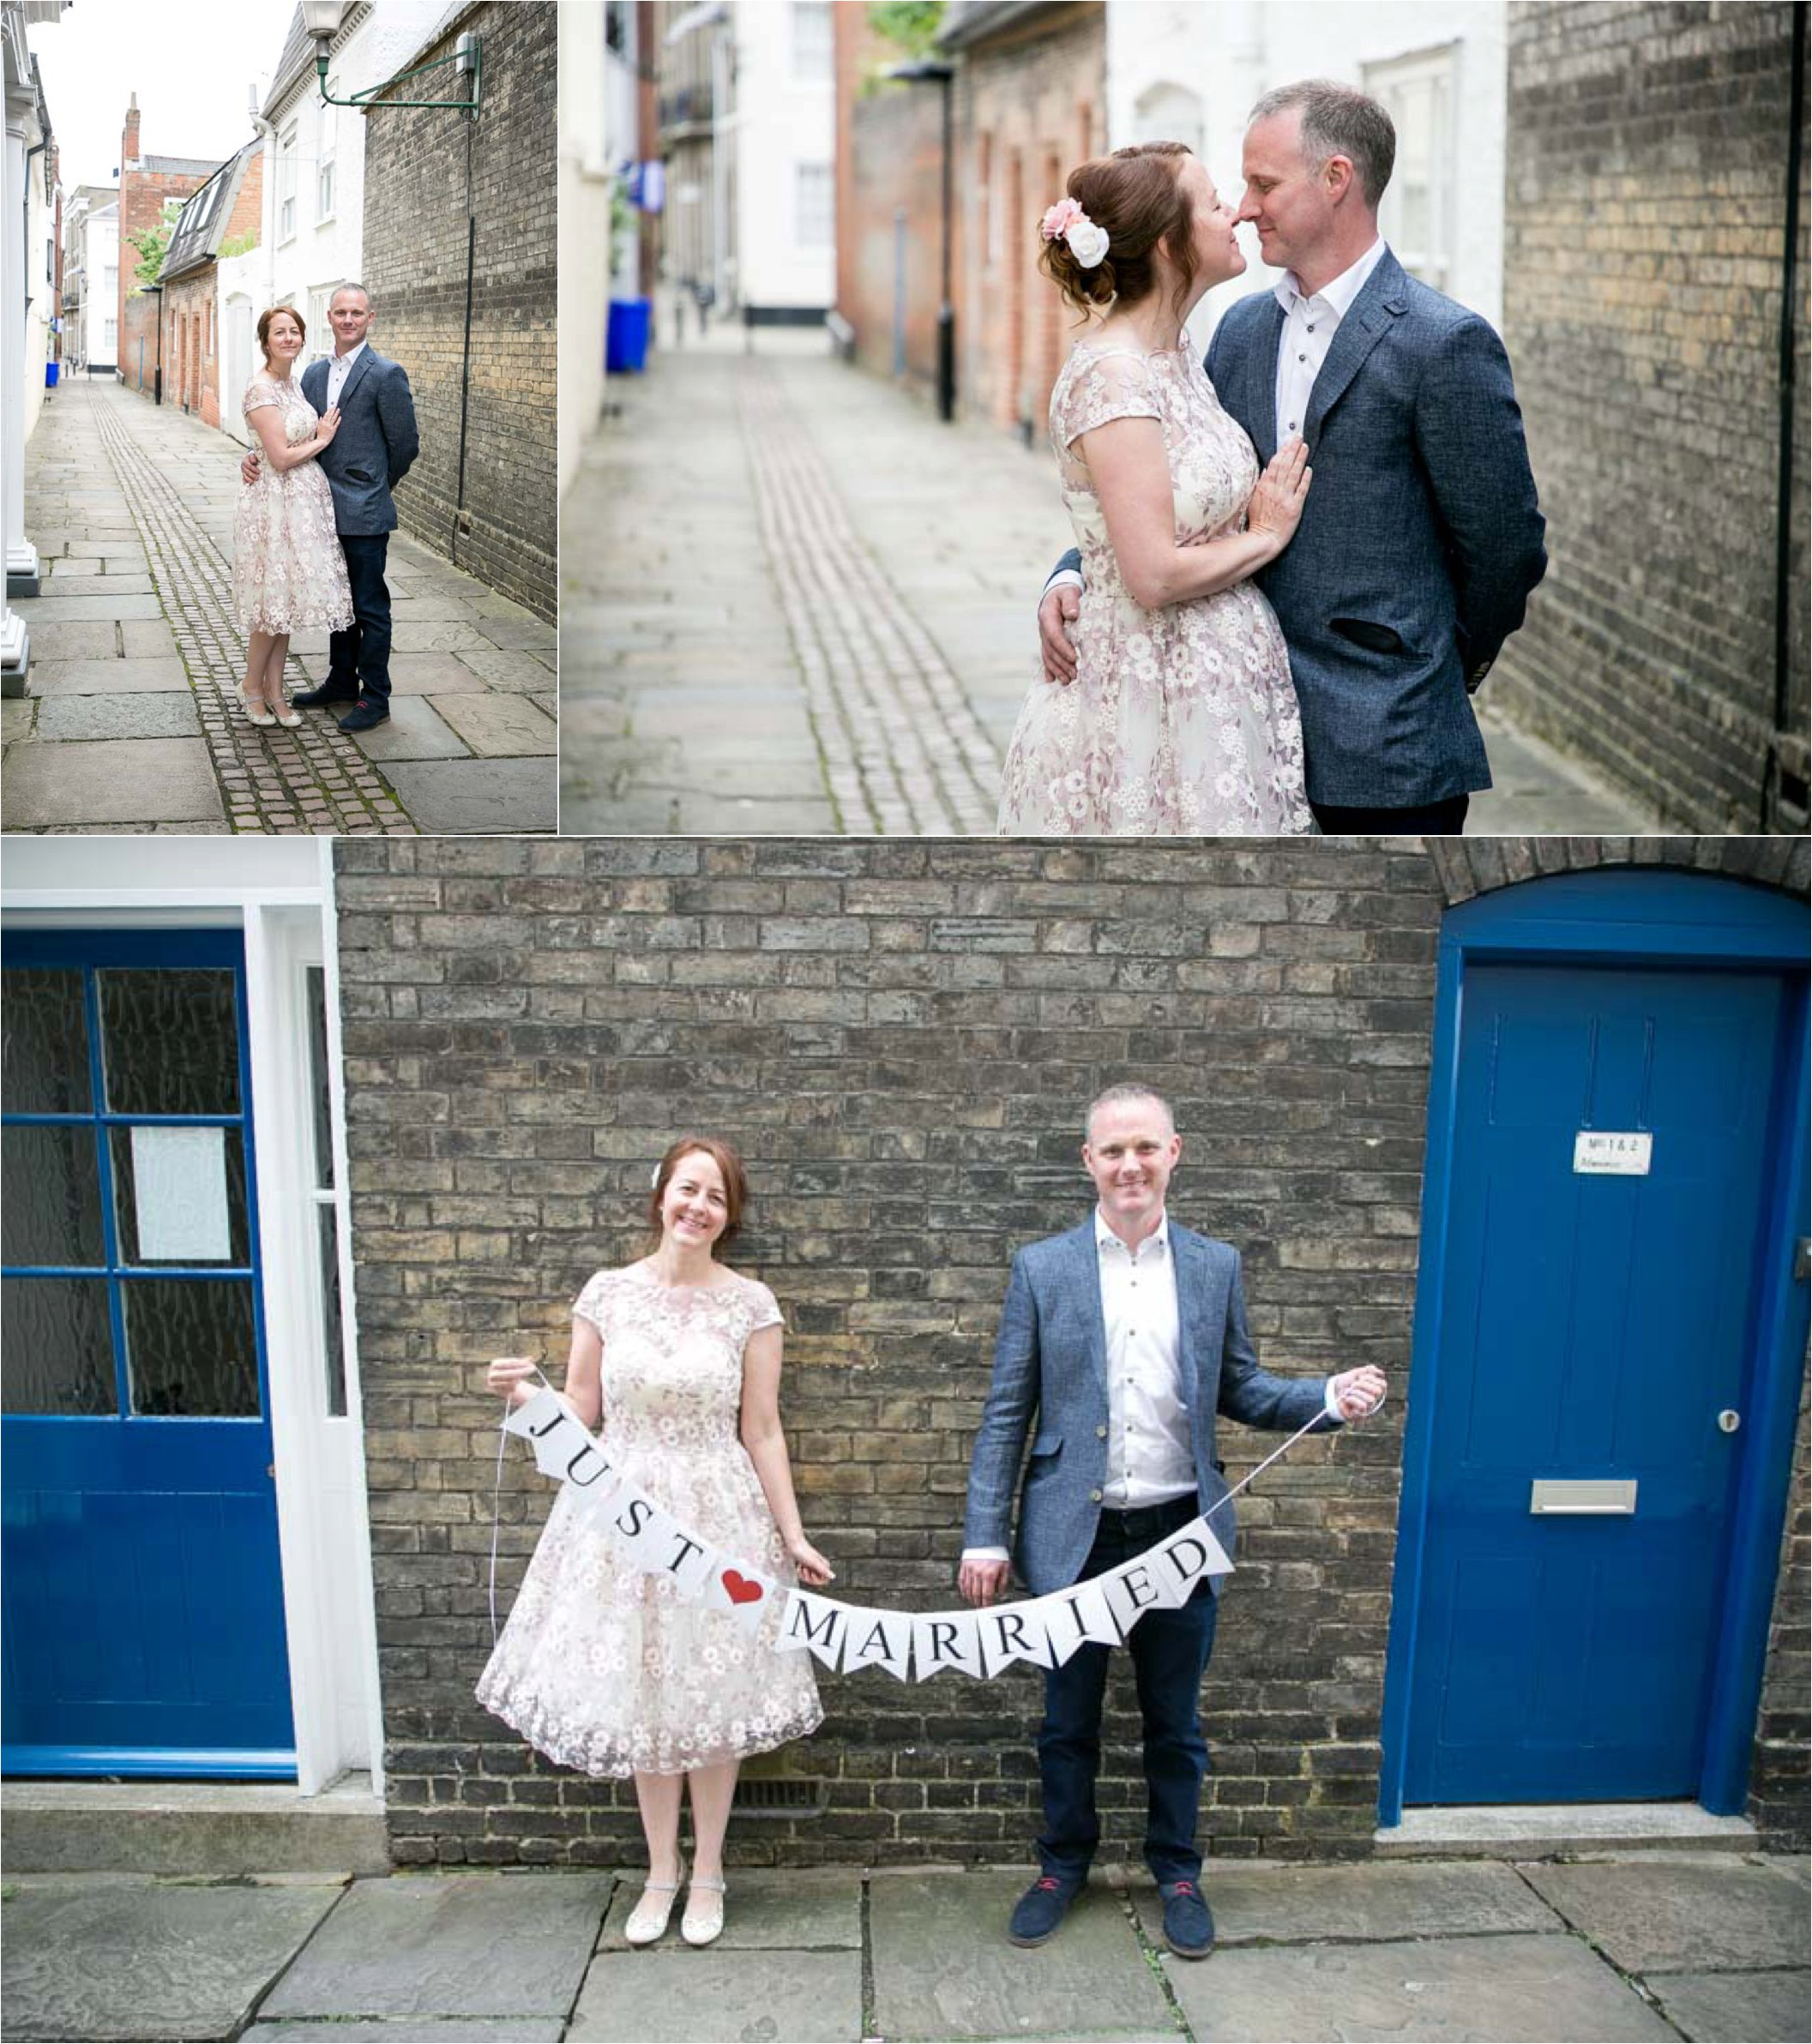 fun romantic wedding photography in bury st edmunds, suffolk. elopement photography